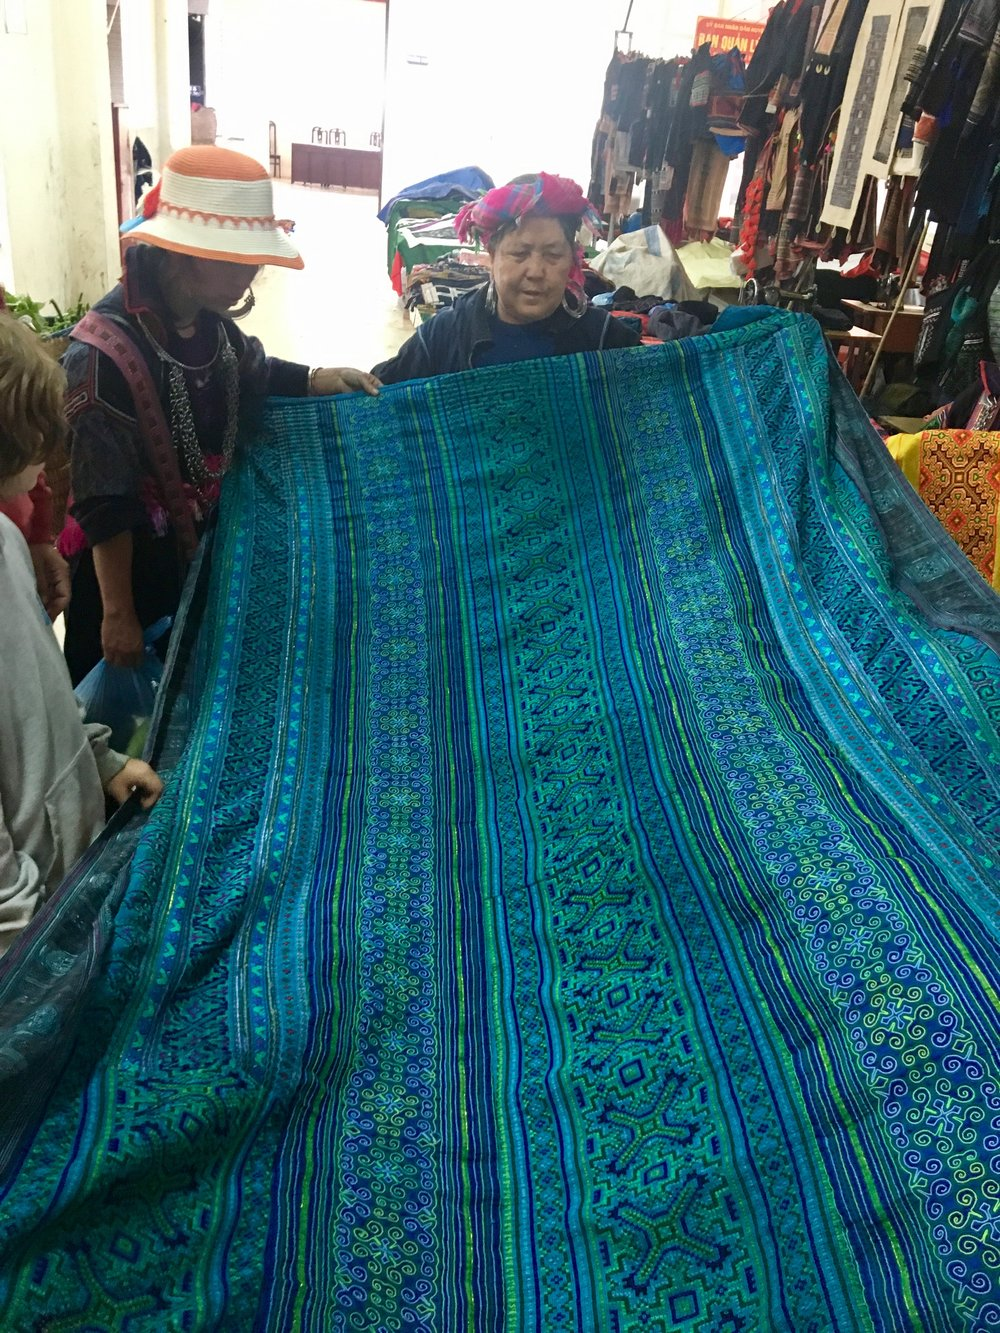 The beautiful hand embroidered blanket took 4 months to make.